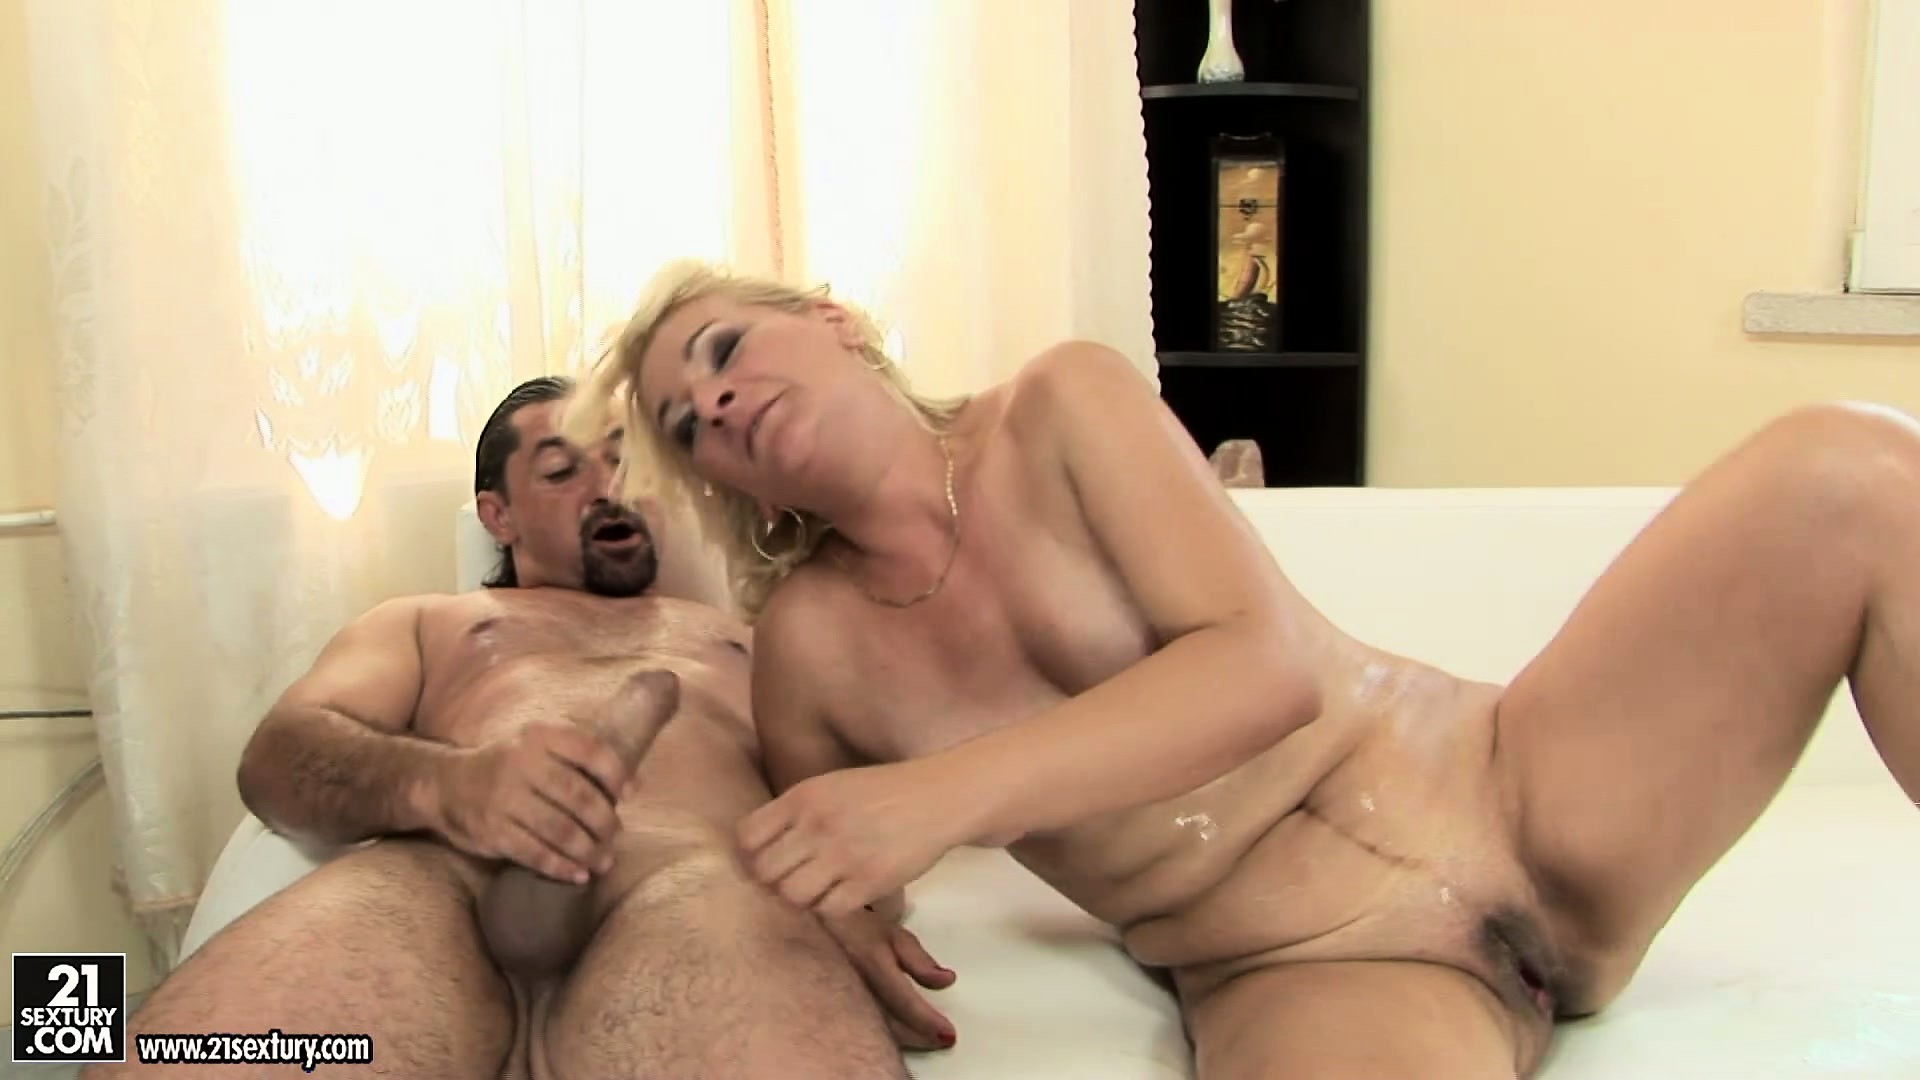 Porn Tube of Blonde Cougar With Tiny Tits Bangs Her Man Like A True Sex Freak